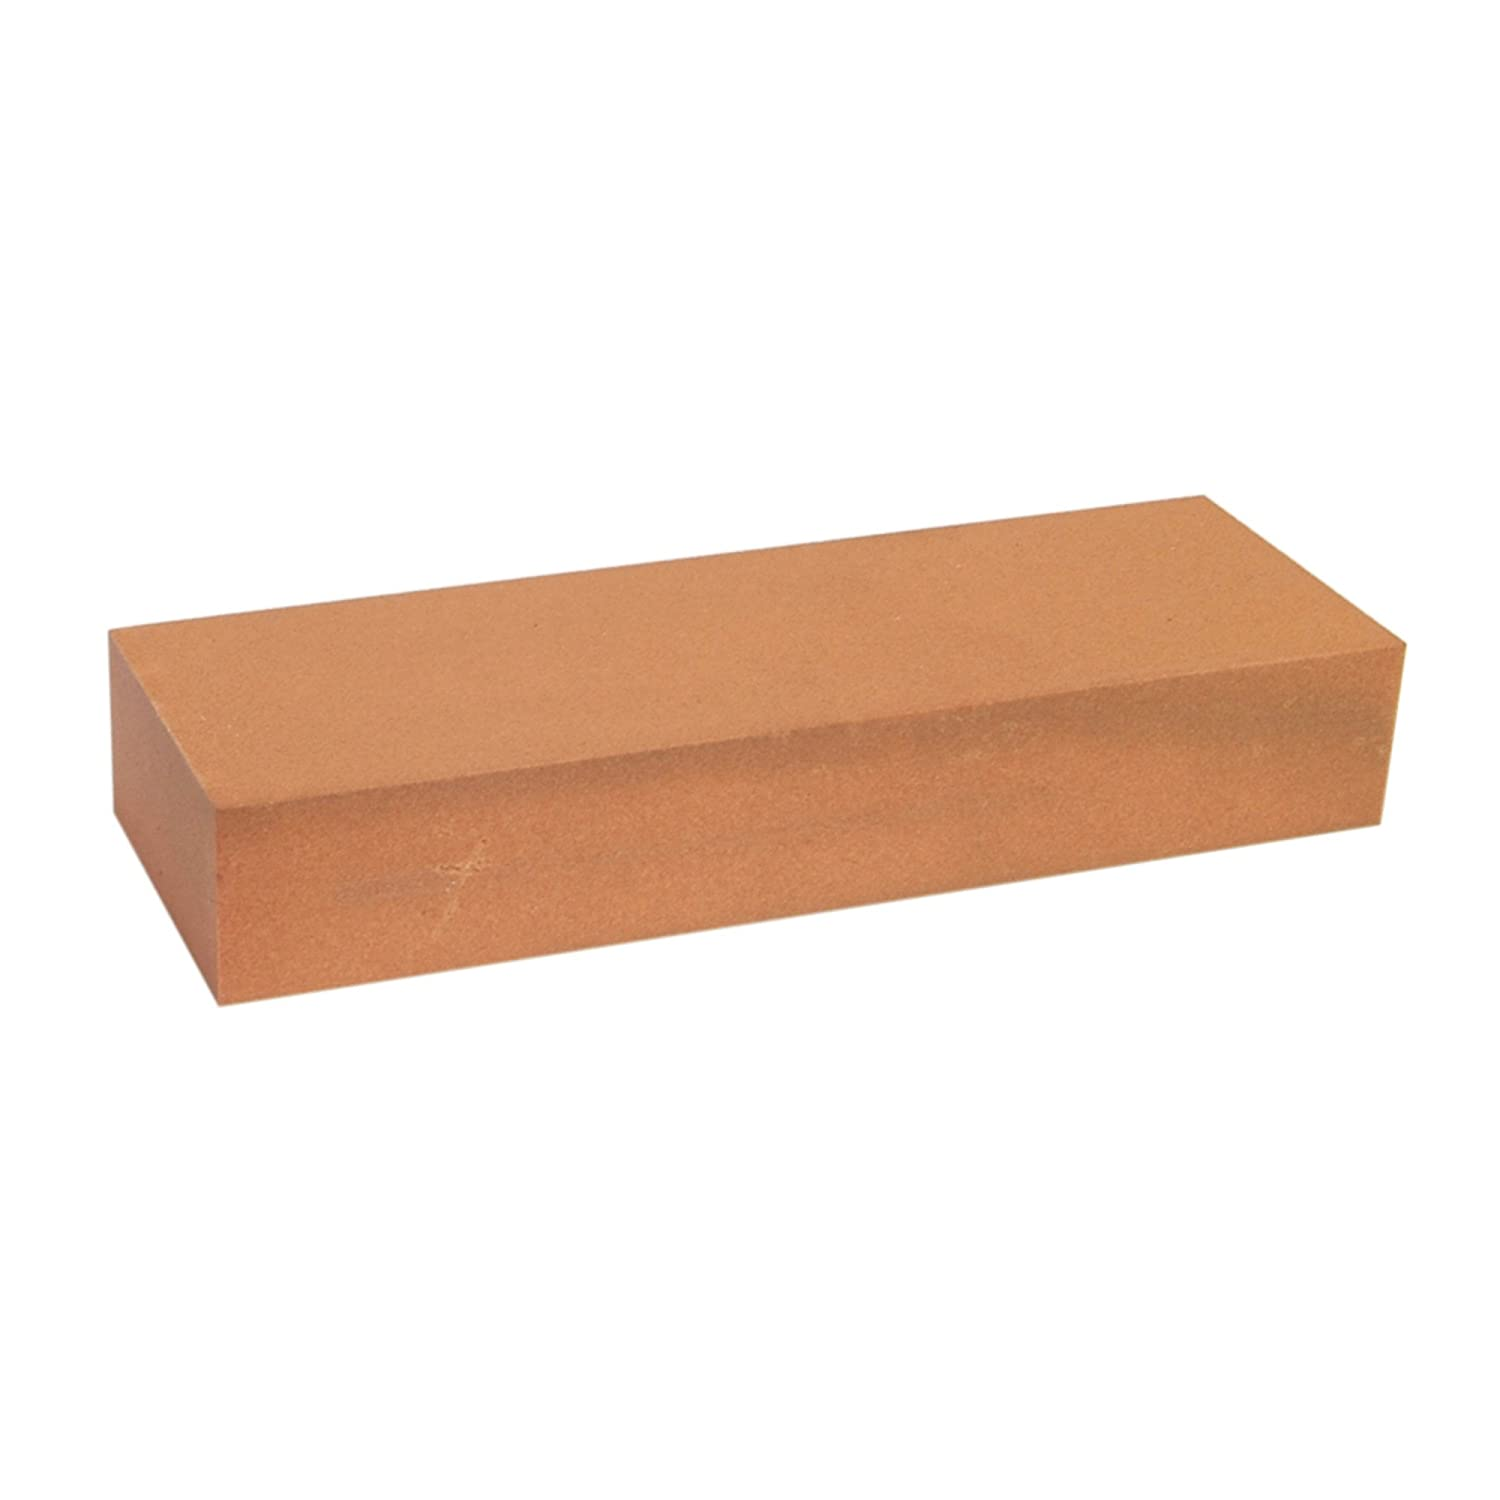 St Gobain 614636-85610 1X2X6 India Fine Bench Stone Norton Abrasives